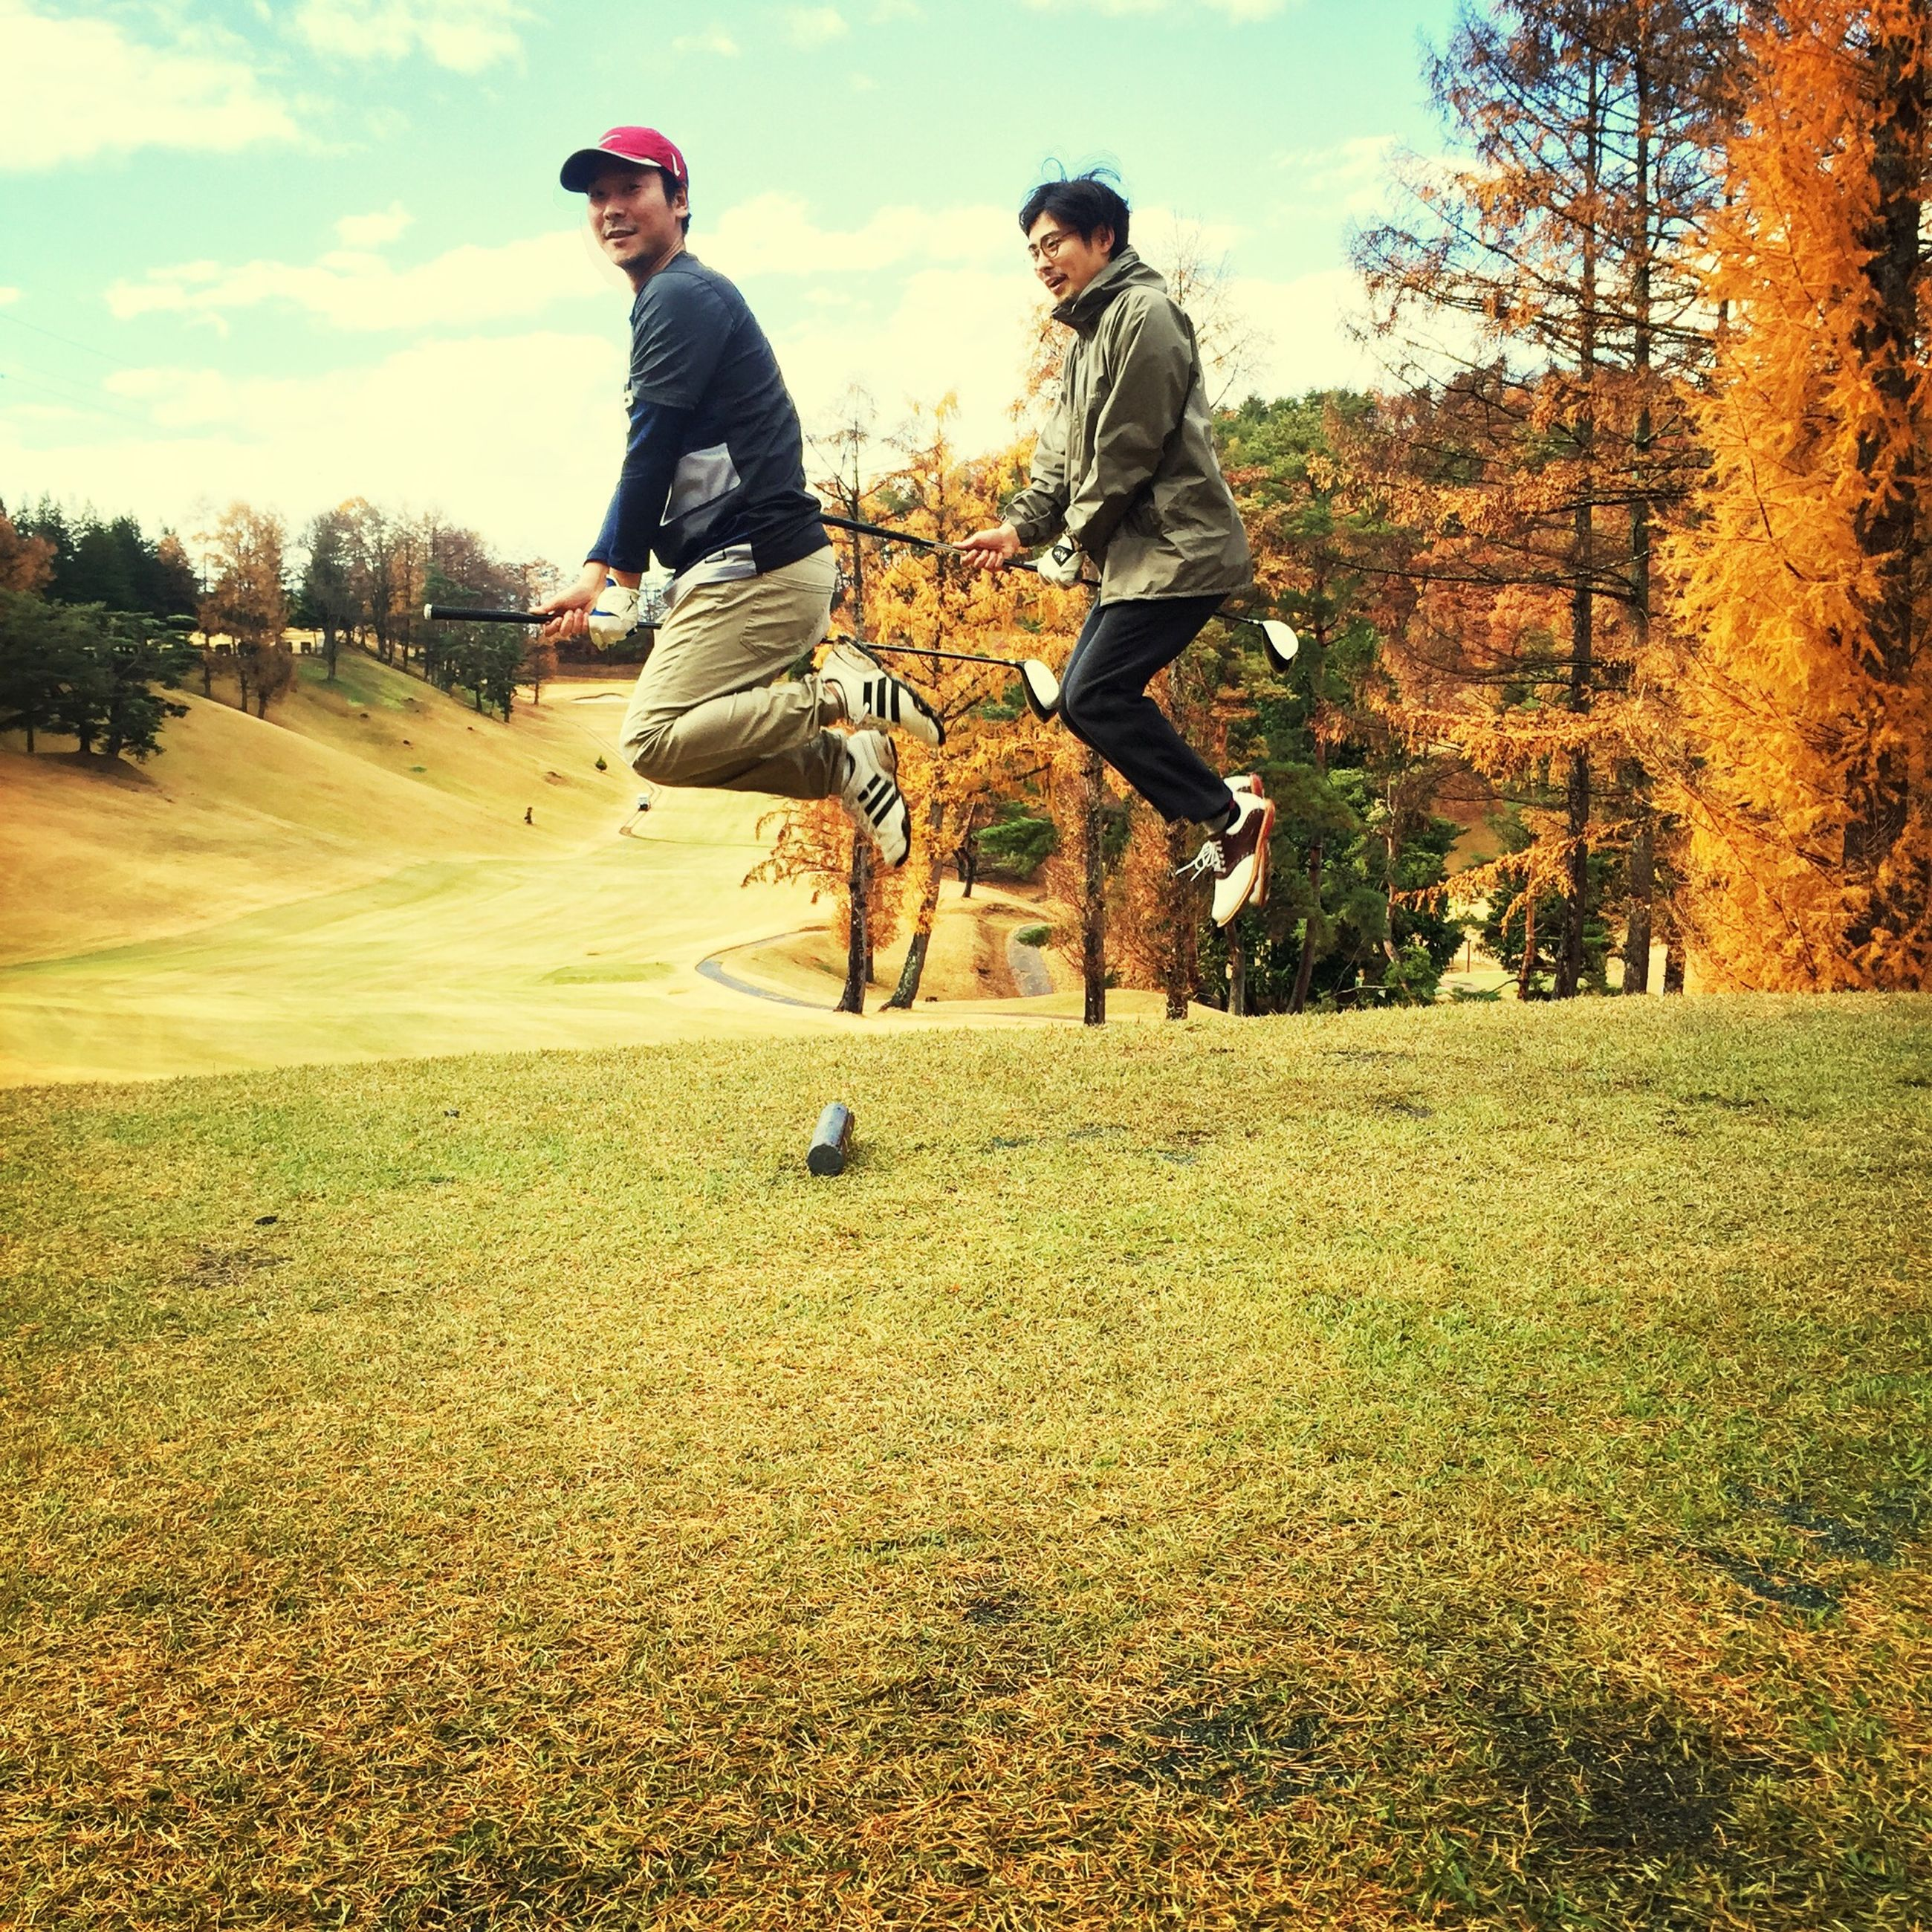 lifestyles, leisure activity, full length, grass, tree, casual clothing, field, person, sky, young adult, jumping, mid-air, standing, enjoyment, young men, fun, men, grassy